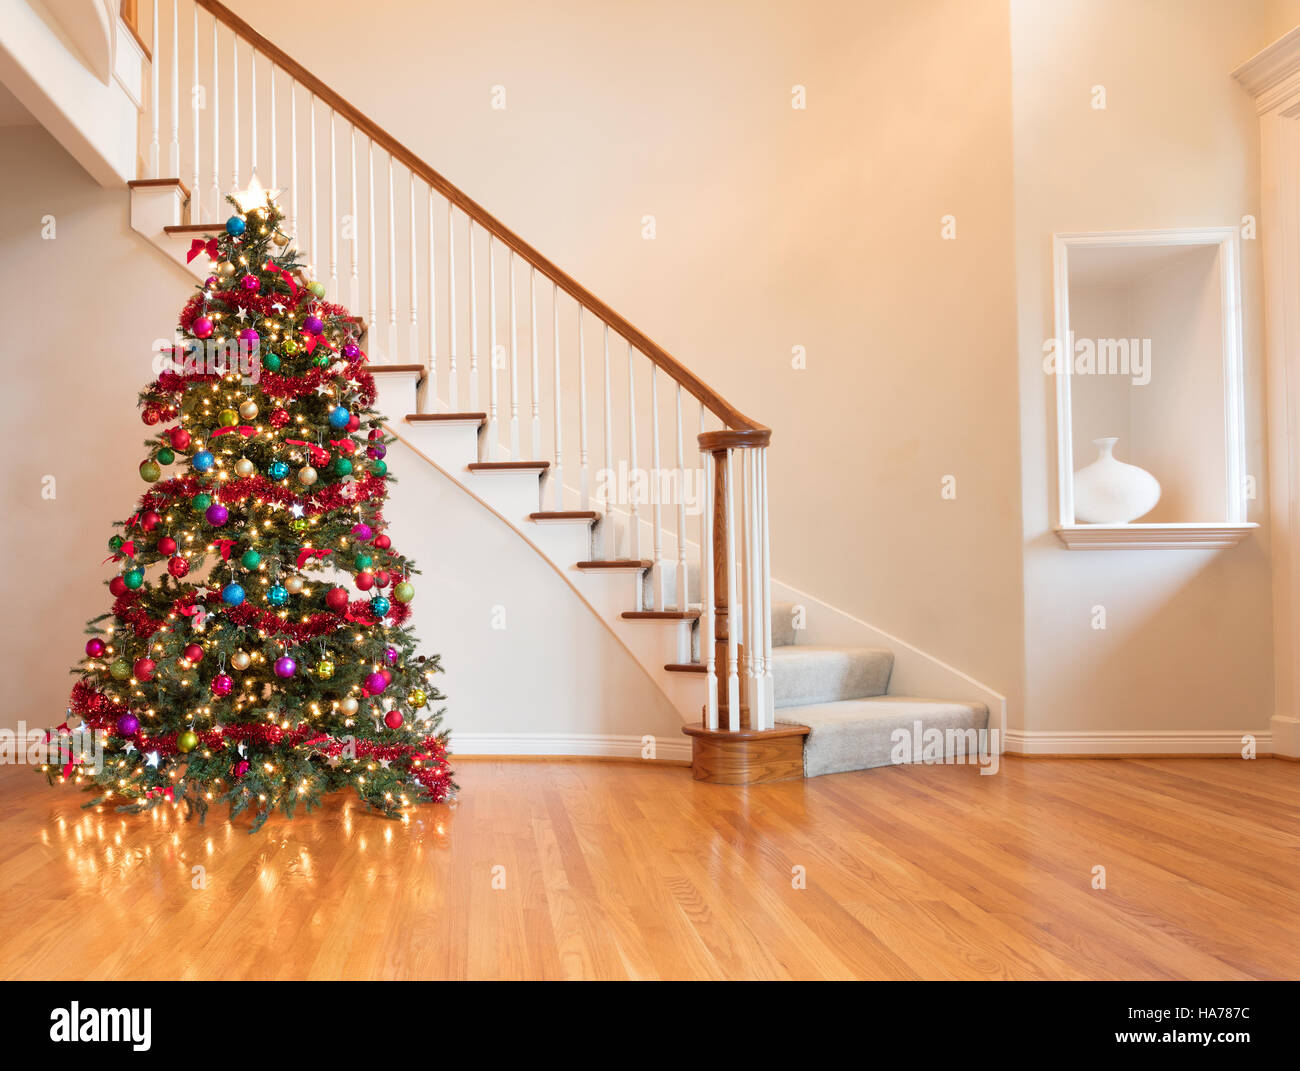 fully decorated christmas on wooden floor with staircase in background stock image - Fully Decorated Christmas Trees